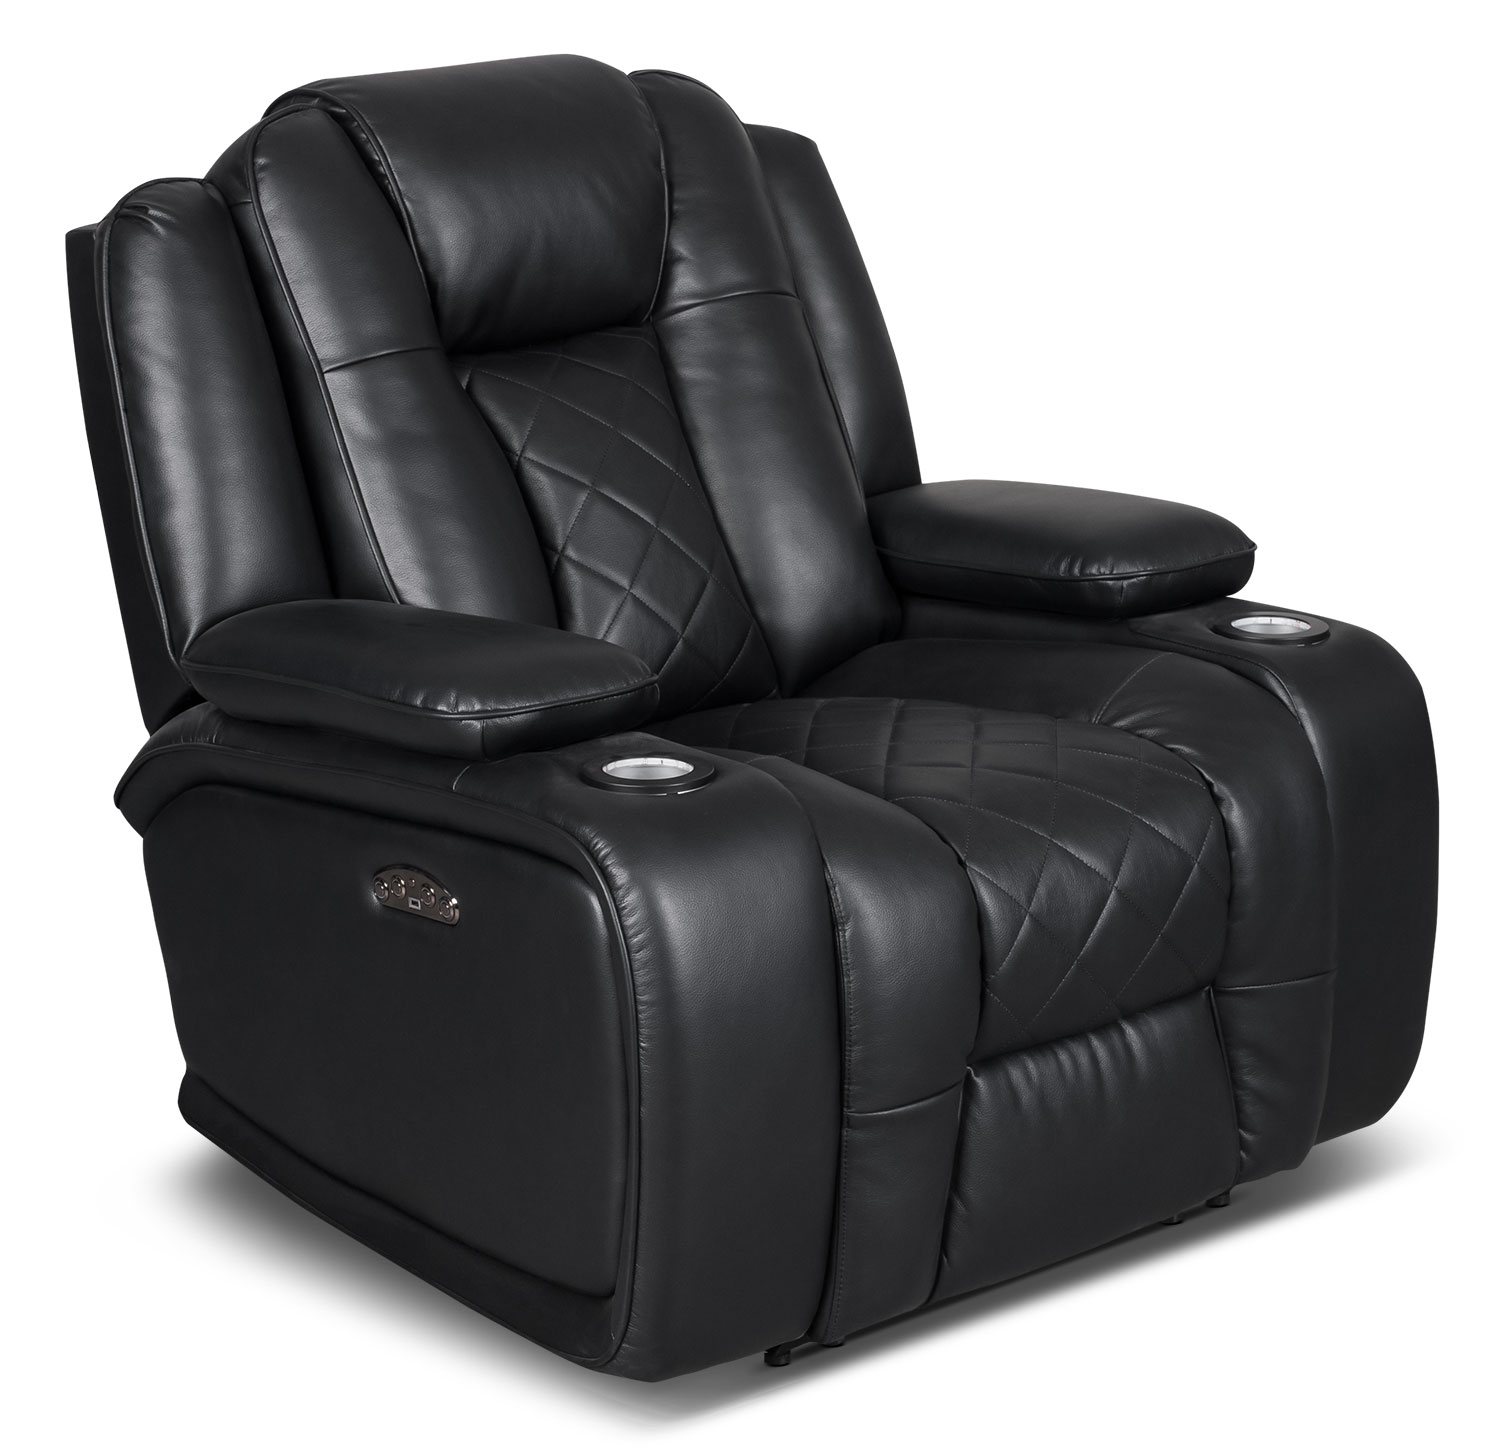 Lonzo Leather-Look Fabric Power Reclining Chair – Black